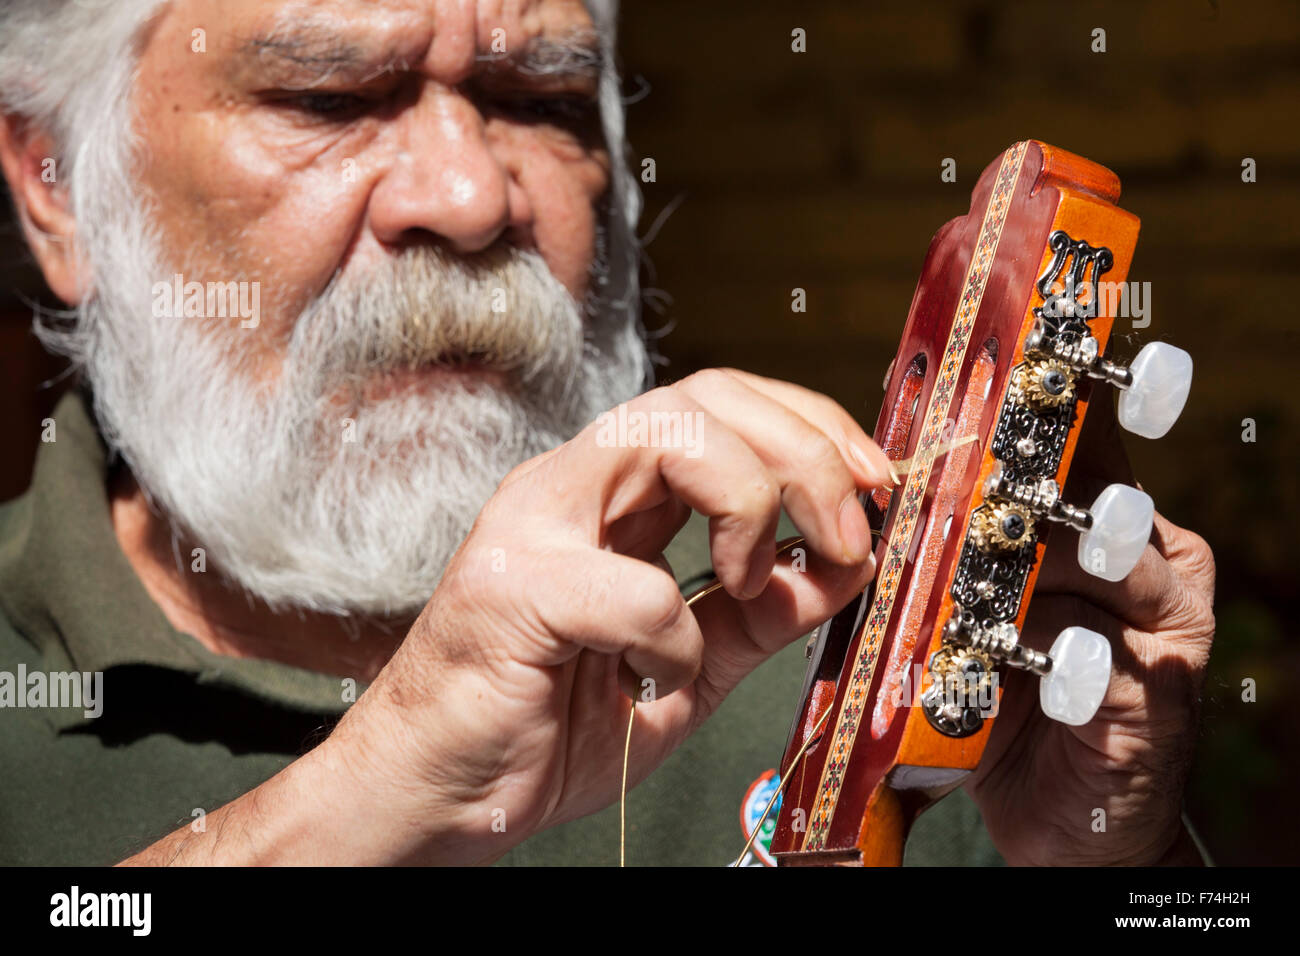 Guitar maker Sistos Pasaye strings one of his products outside a shop in Paracho, Michoacan, Mexico. - Stock Image